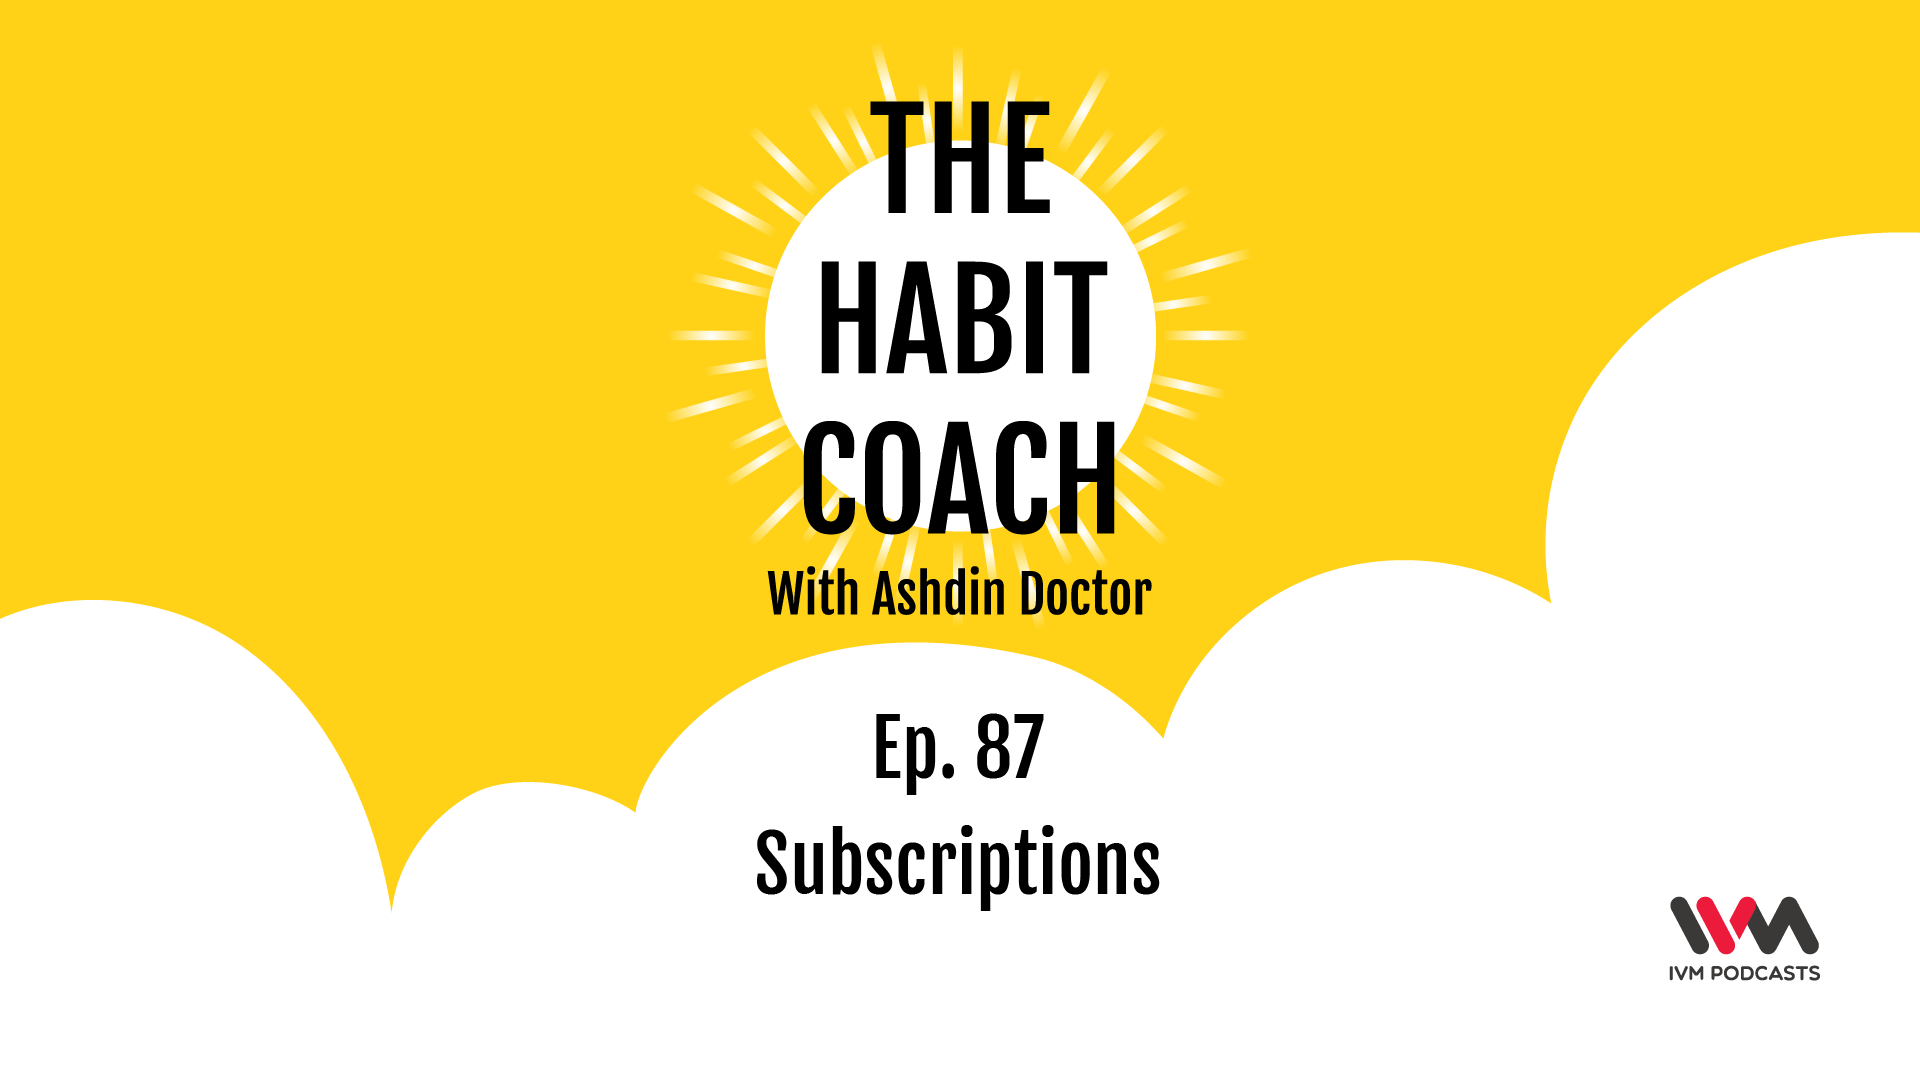 TheHabitCoachEpisode87.png